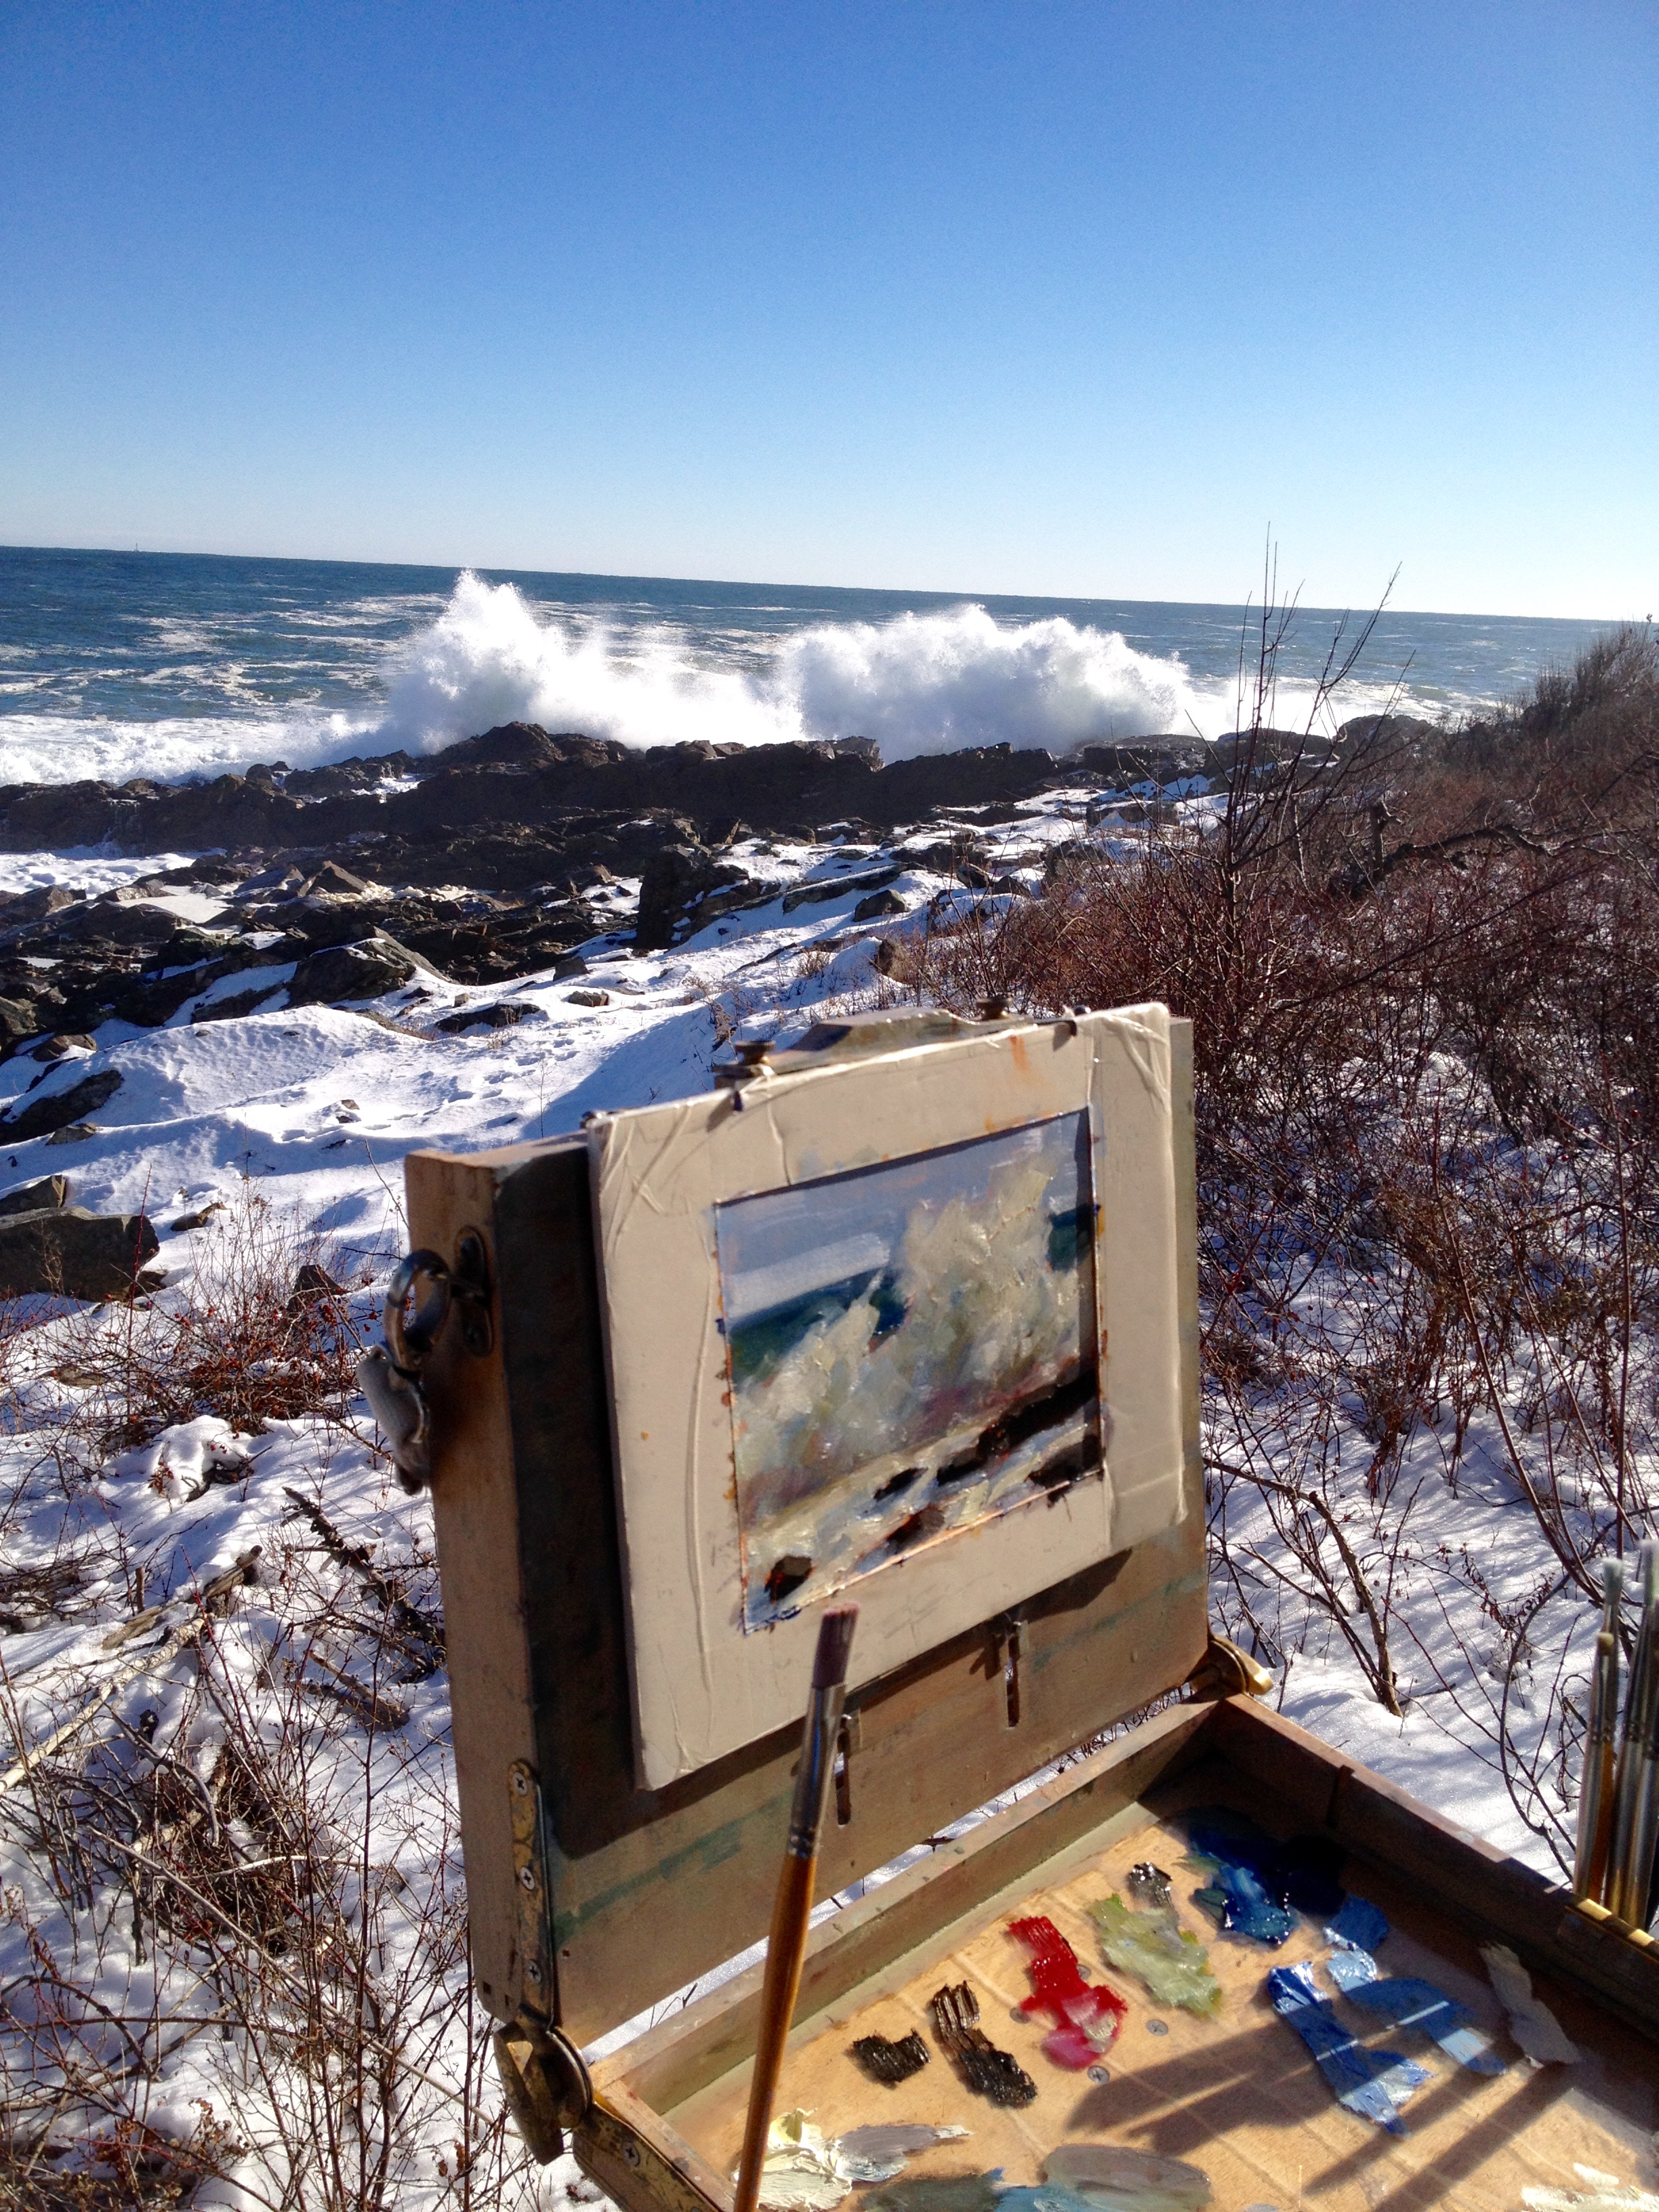 Crashing surf- painting a nor'easter